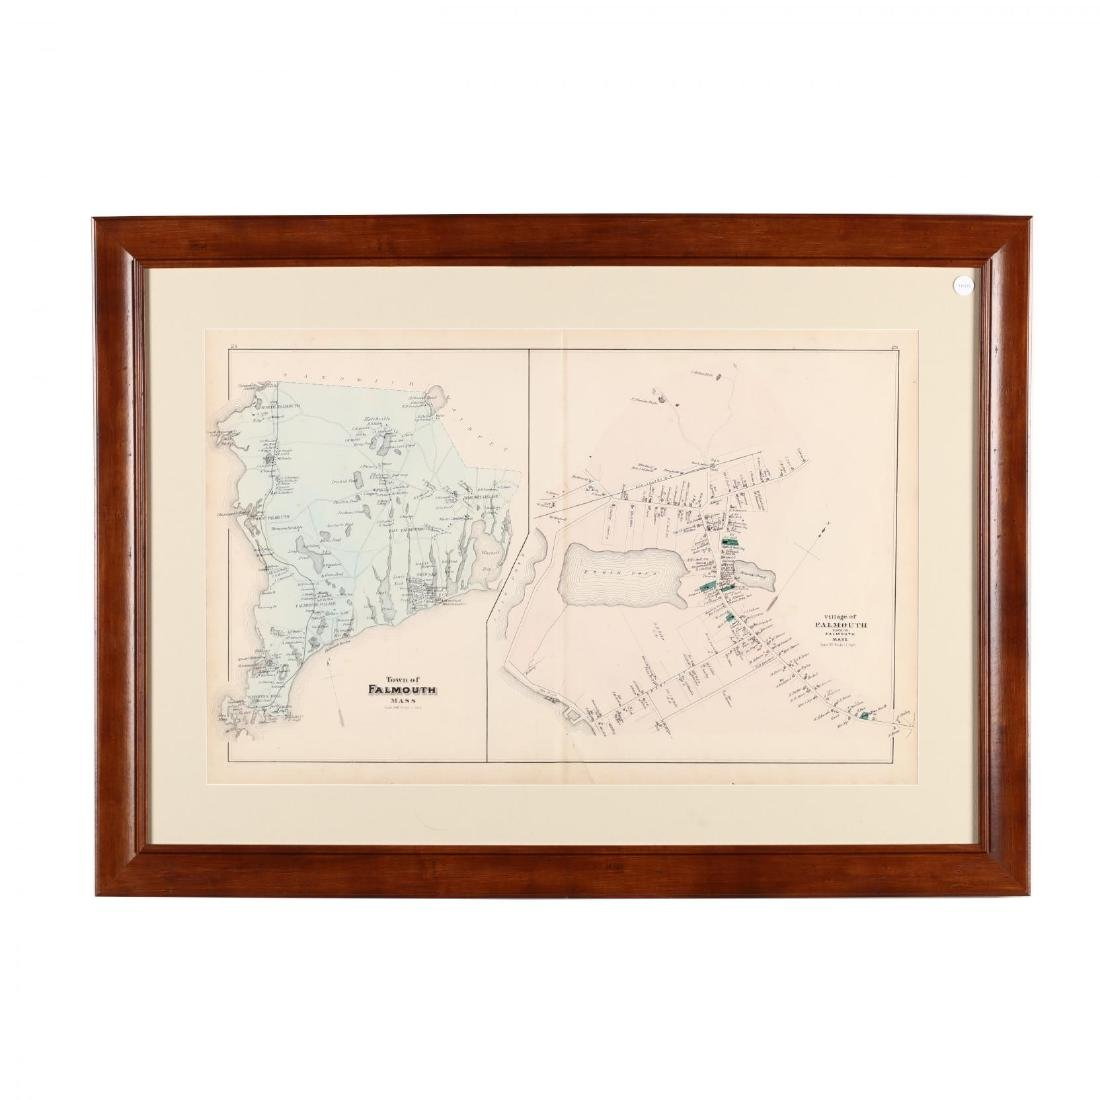 Antique Framed Map of Falmouth, MA